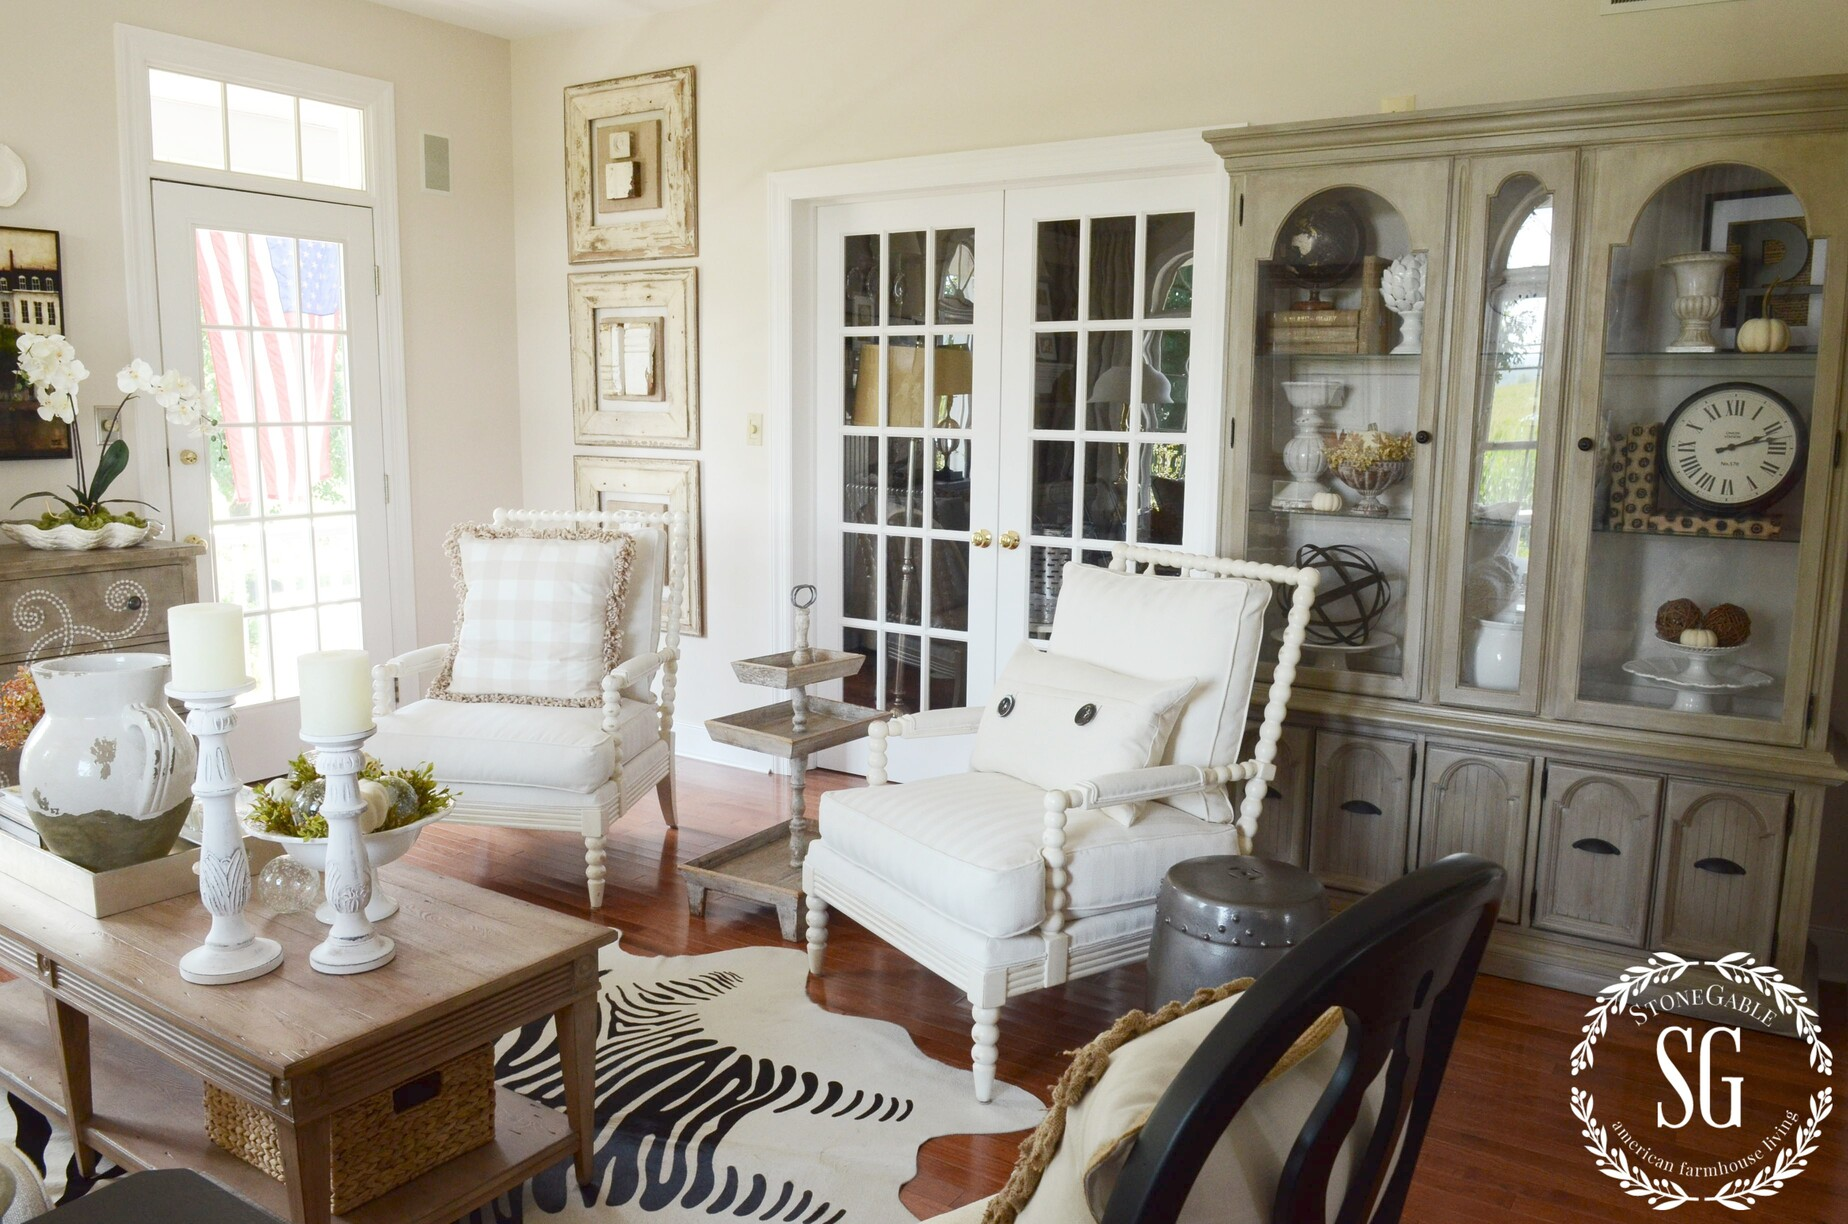 5 EASY TIPS TO STYLE A HUTCH - StoneGable